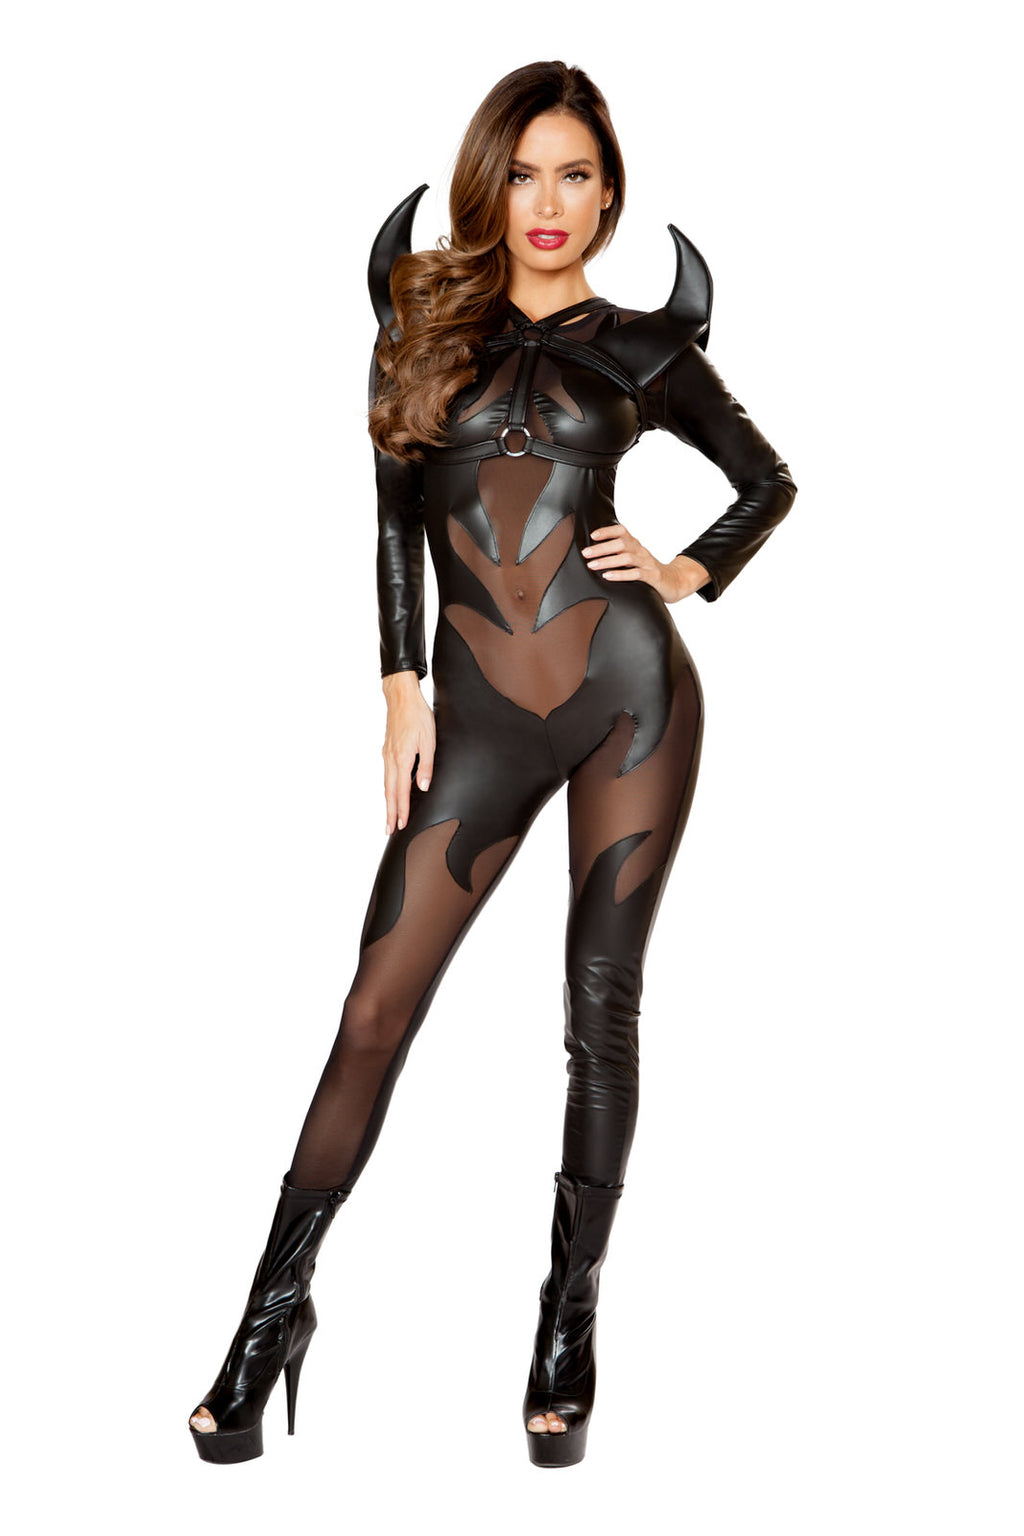 1-PC-Hot-Devil-Lady-Black-Sheer-Flame-Jumpsuit-Party-Costume